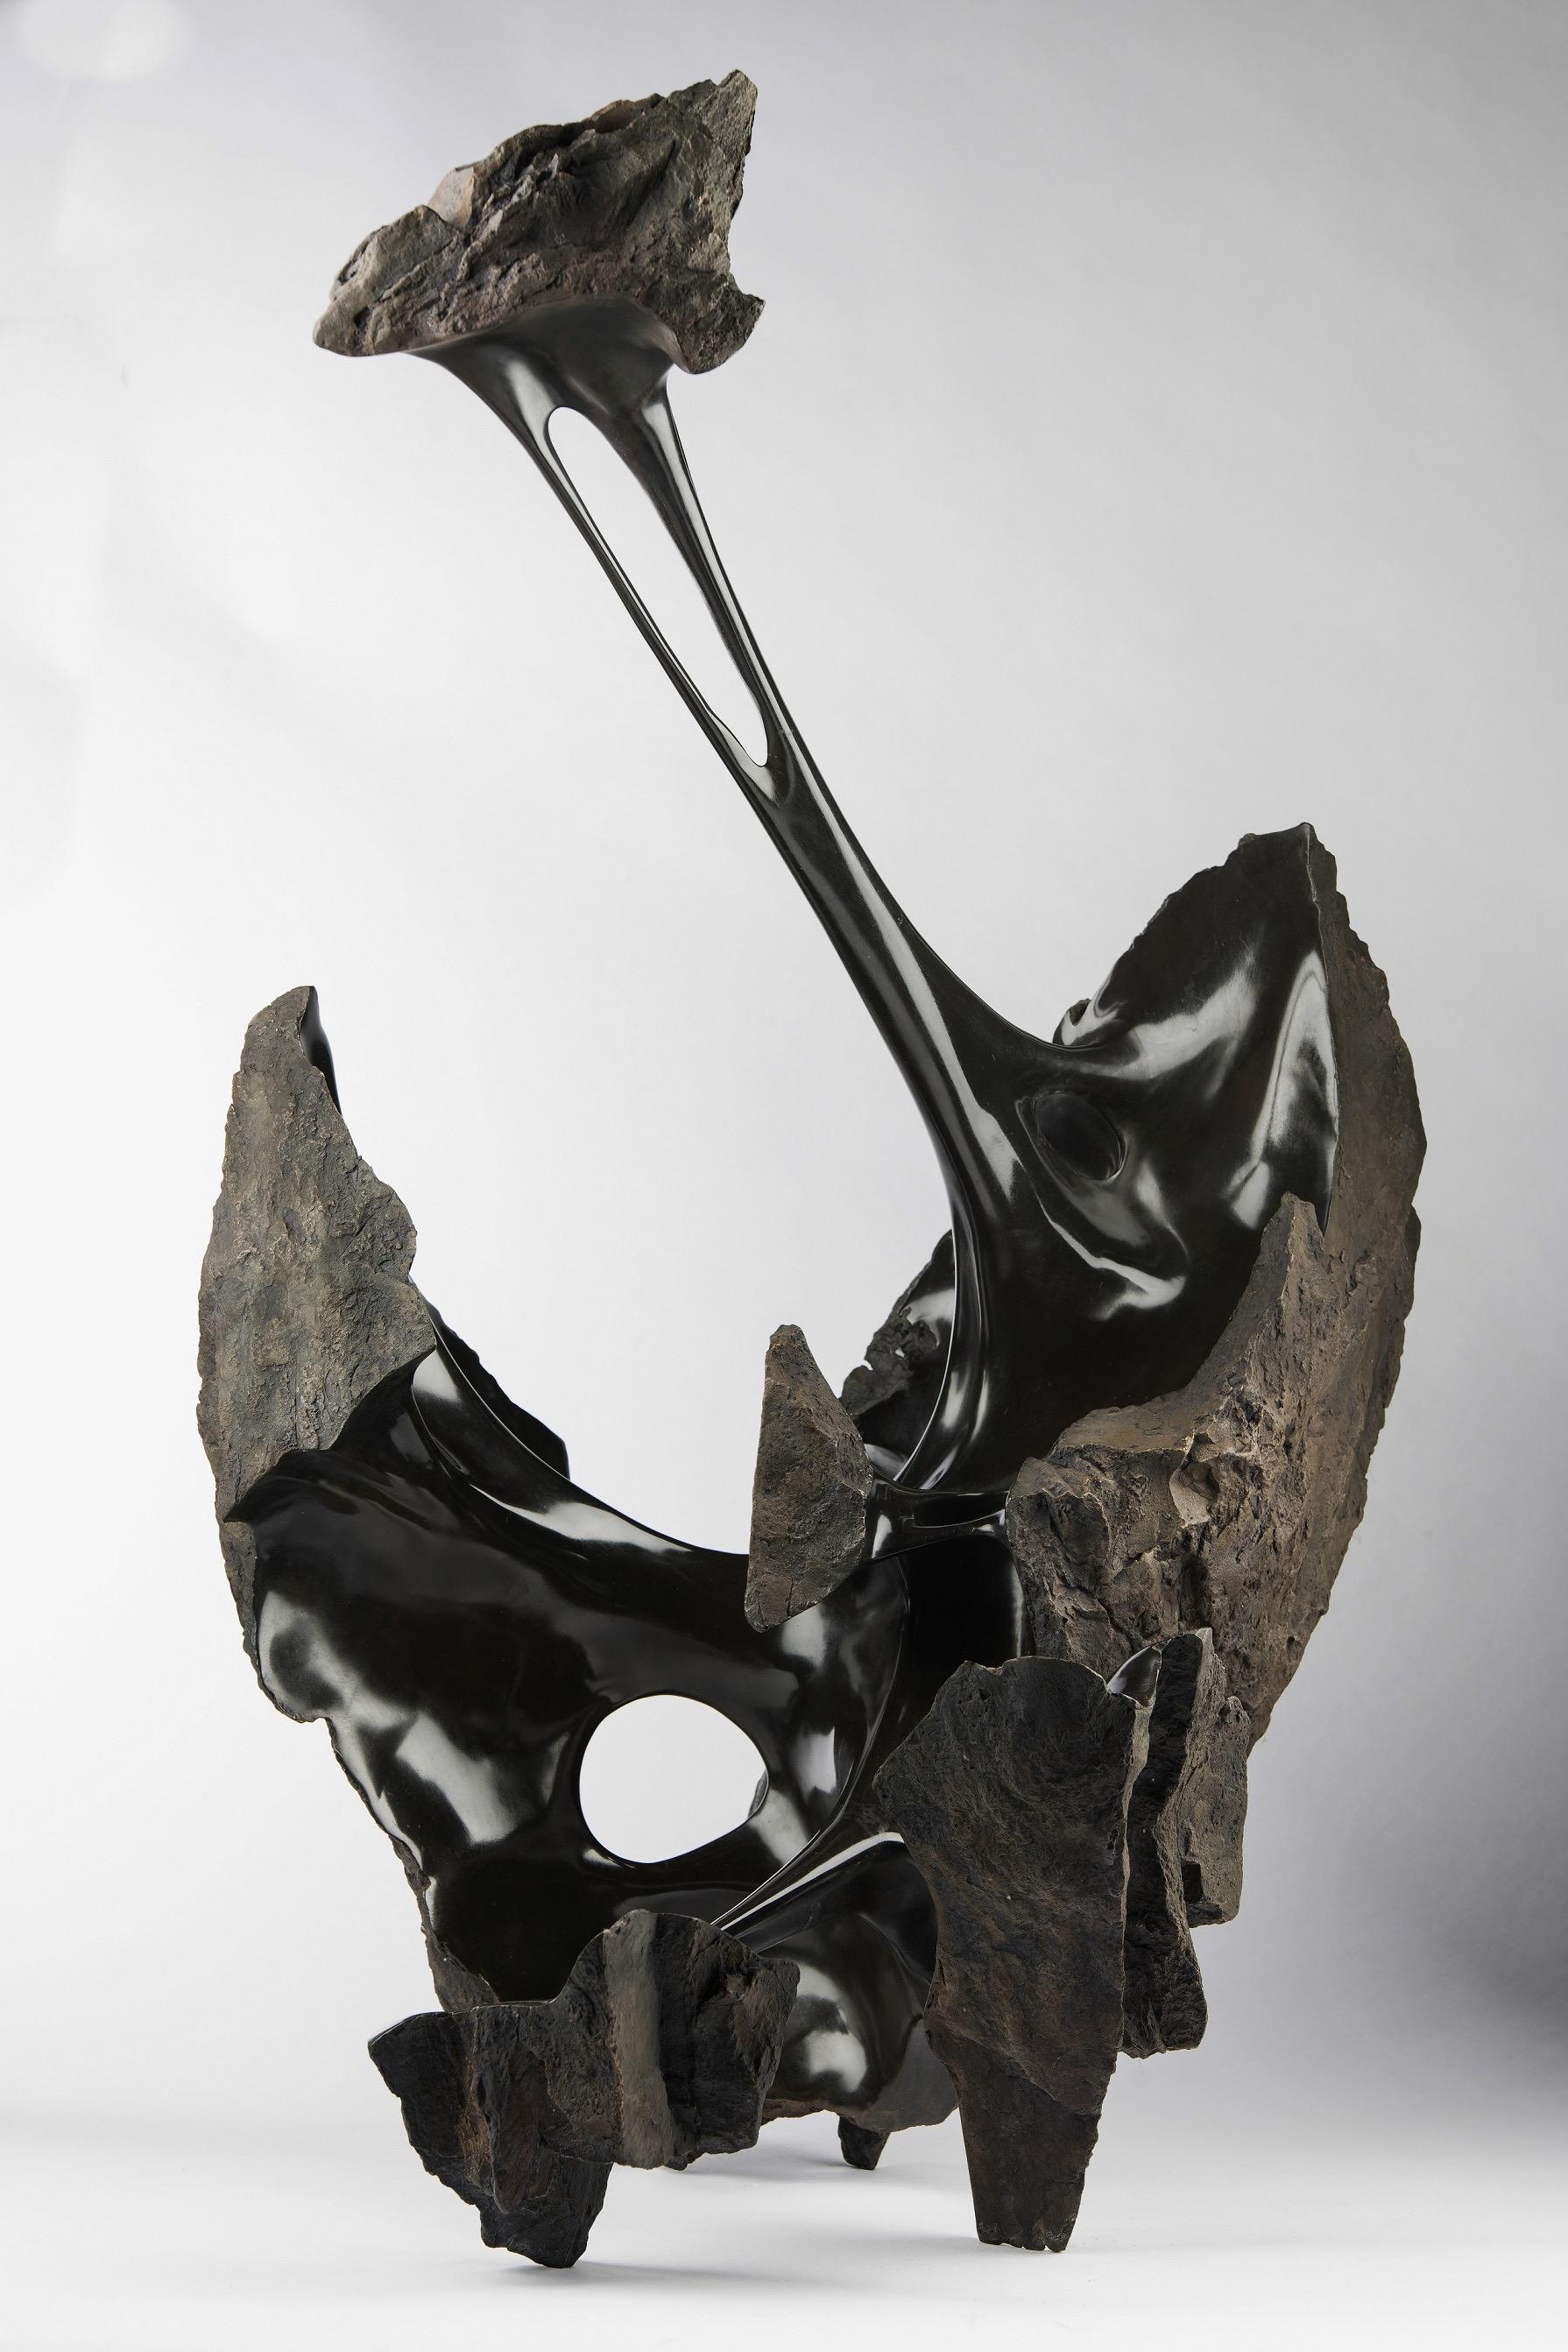 Serendipity by Romain Langlois - Contemporary bronze sculpture, Bisected Boulder